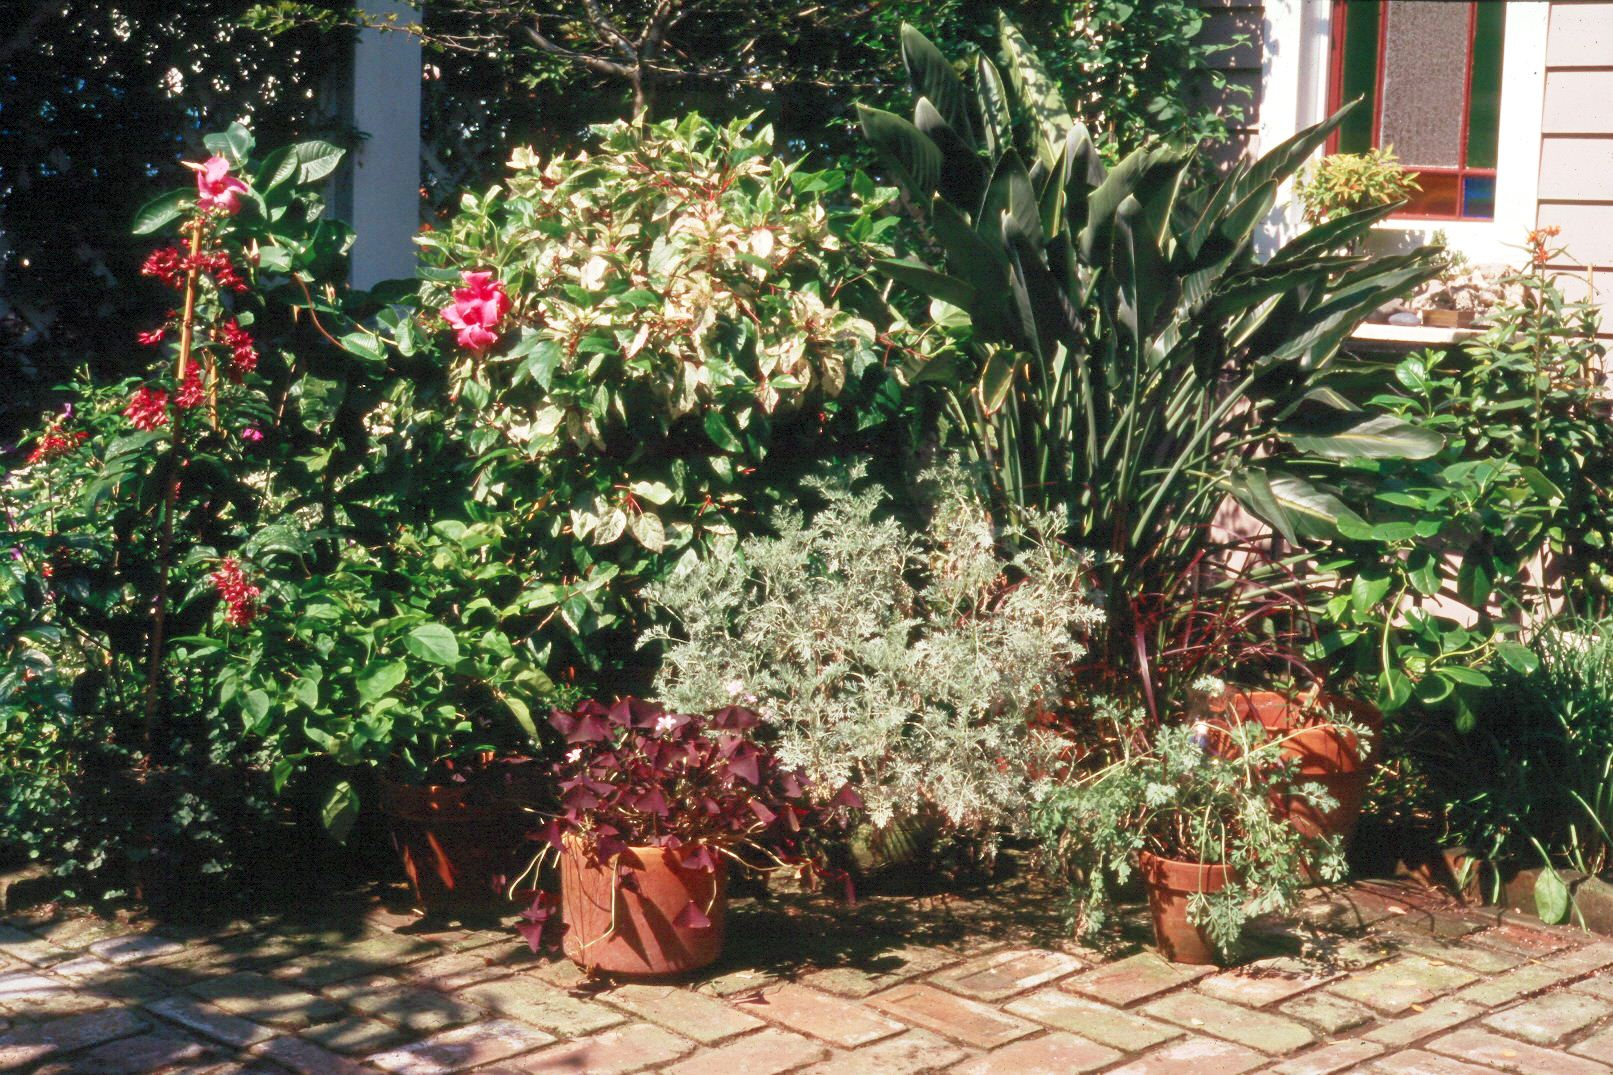 Outside plants in pots need special care lsu agcenter for Outside plants and shrubs